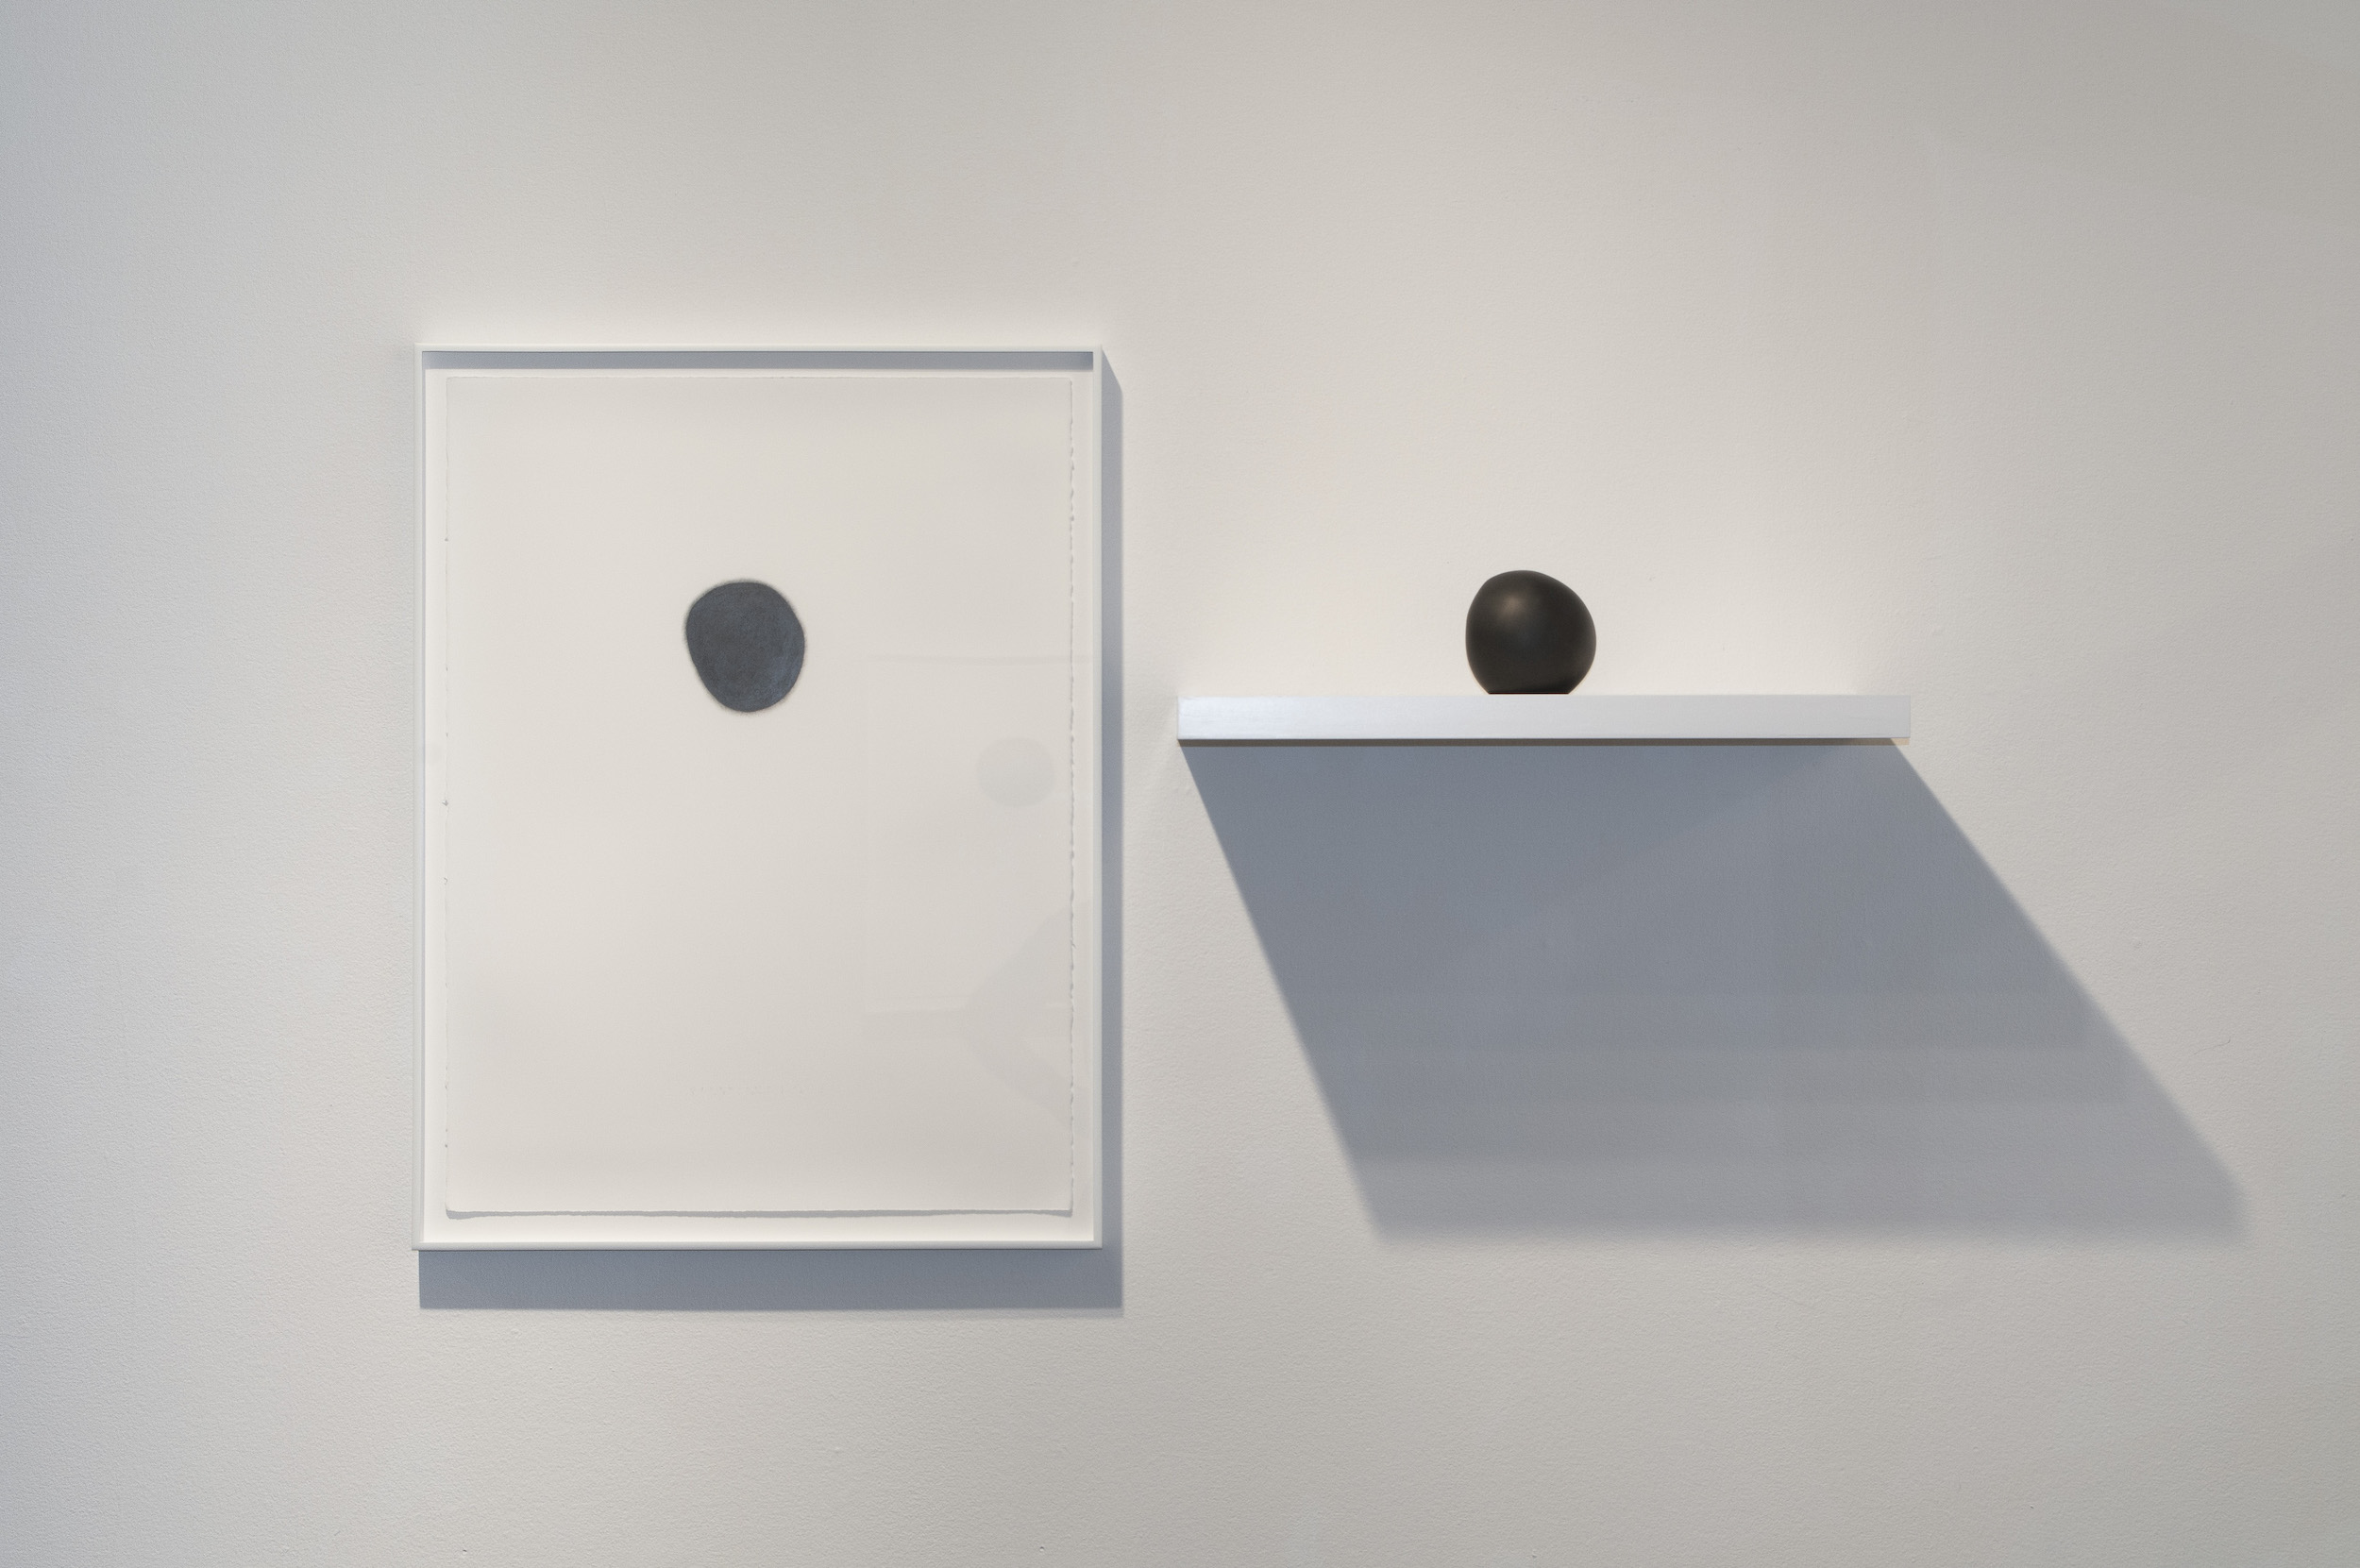 """Daily Practice: Circle Drawing, Ucross, Sphere no.1, 2012  Circle Drawing: graphite pencil on paper, 30"""" x 22""""  Sculpture: solid graphite"""